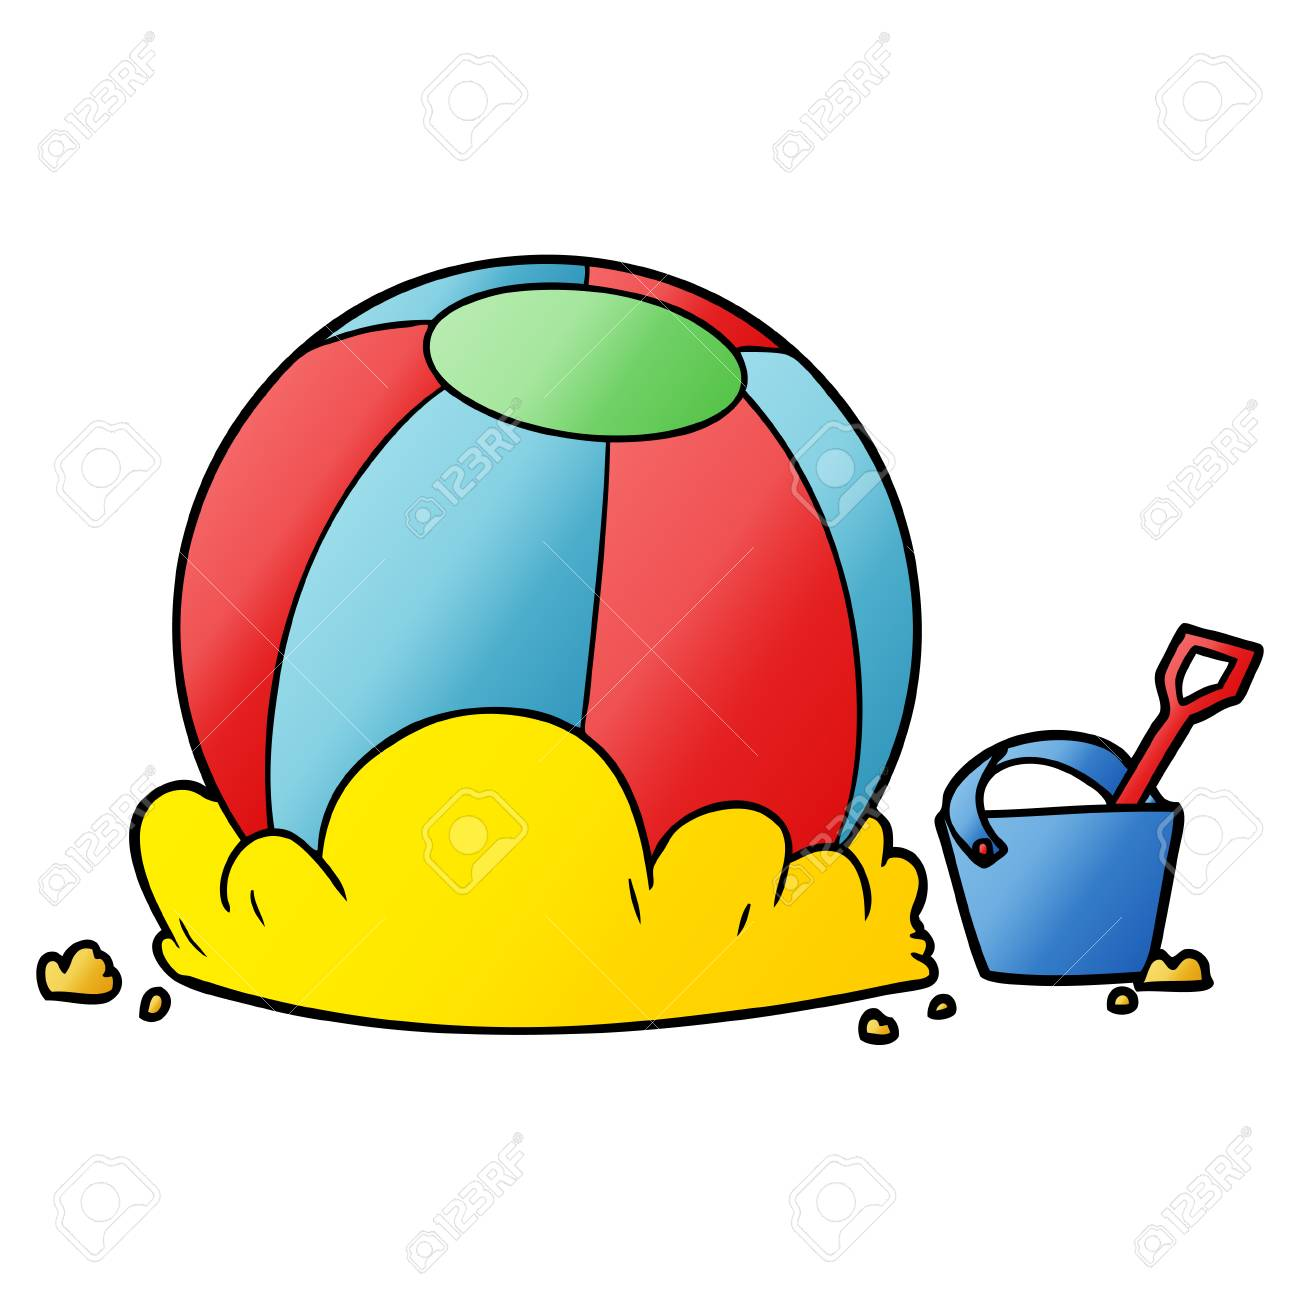 Cartoon Beach Ball And Bucket Royalty Free Cliparts Vectors And Stock Illustration Image 94549113 Download cartoon beach at dusk stock video by tykcartoon. 123rf com